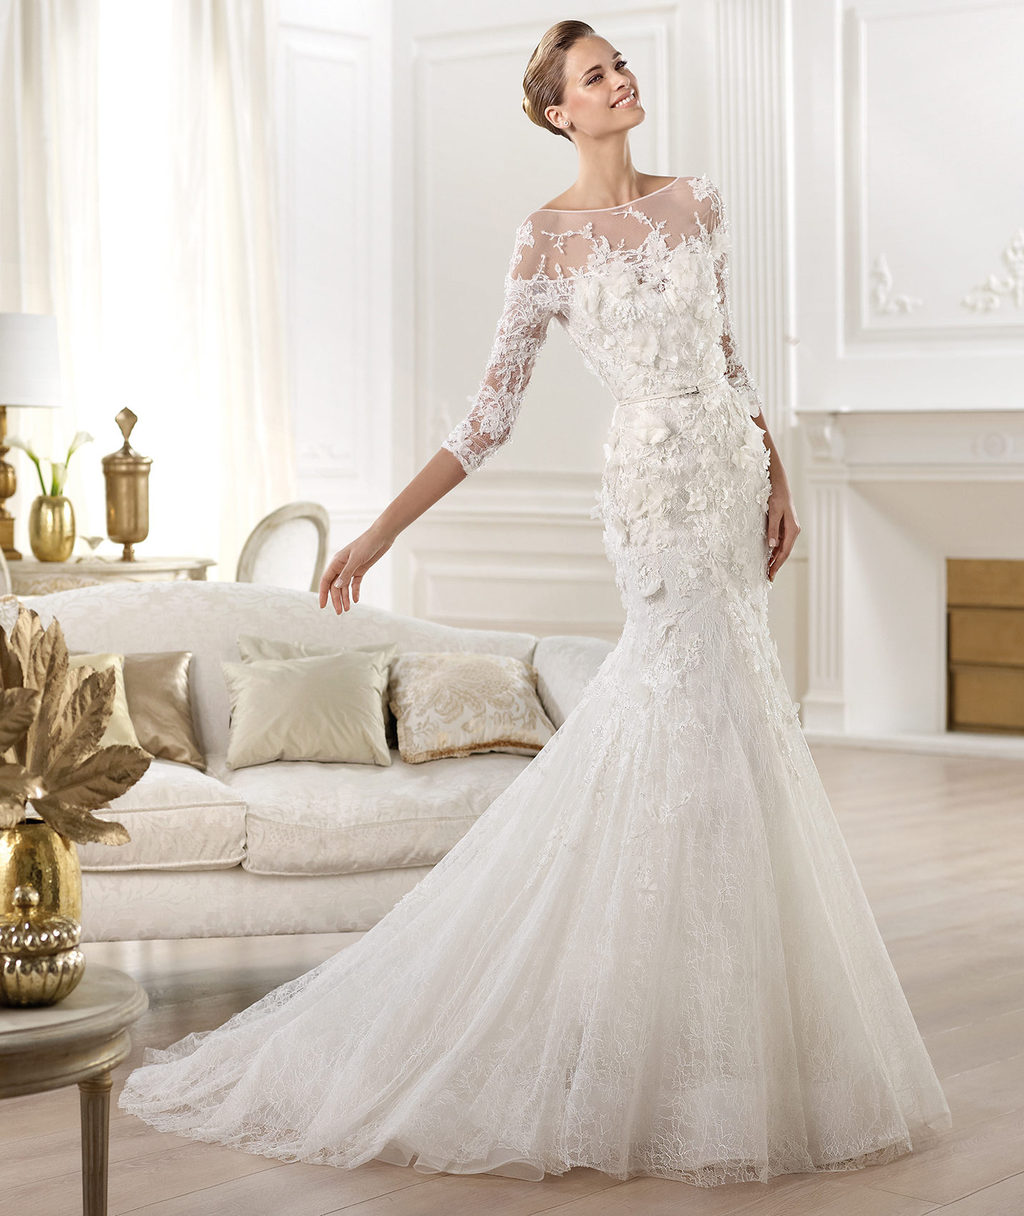 Elie-saab-wedding-dress-2014-pronovias-bridal-cignus.full